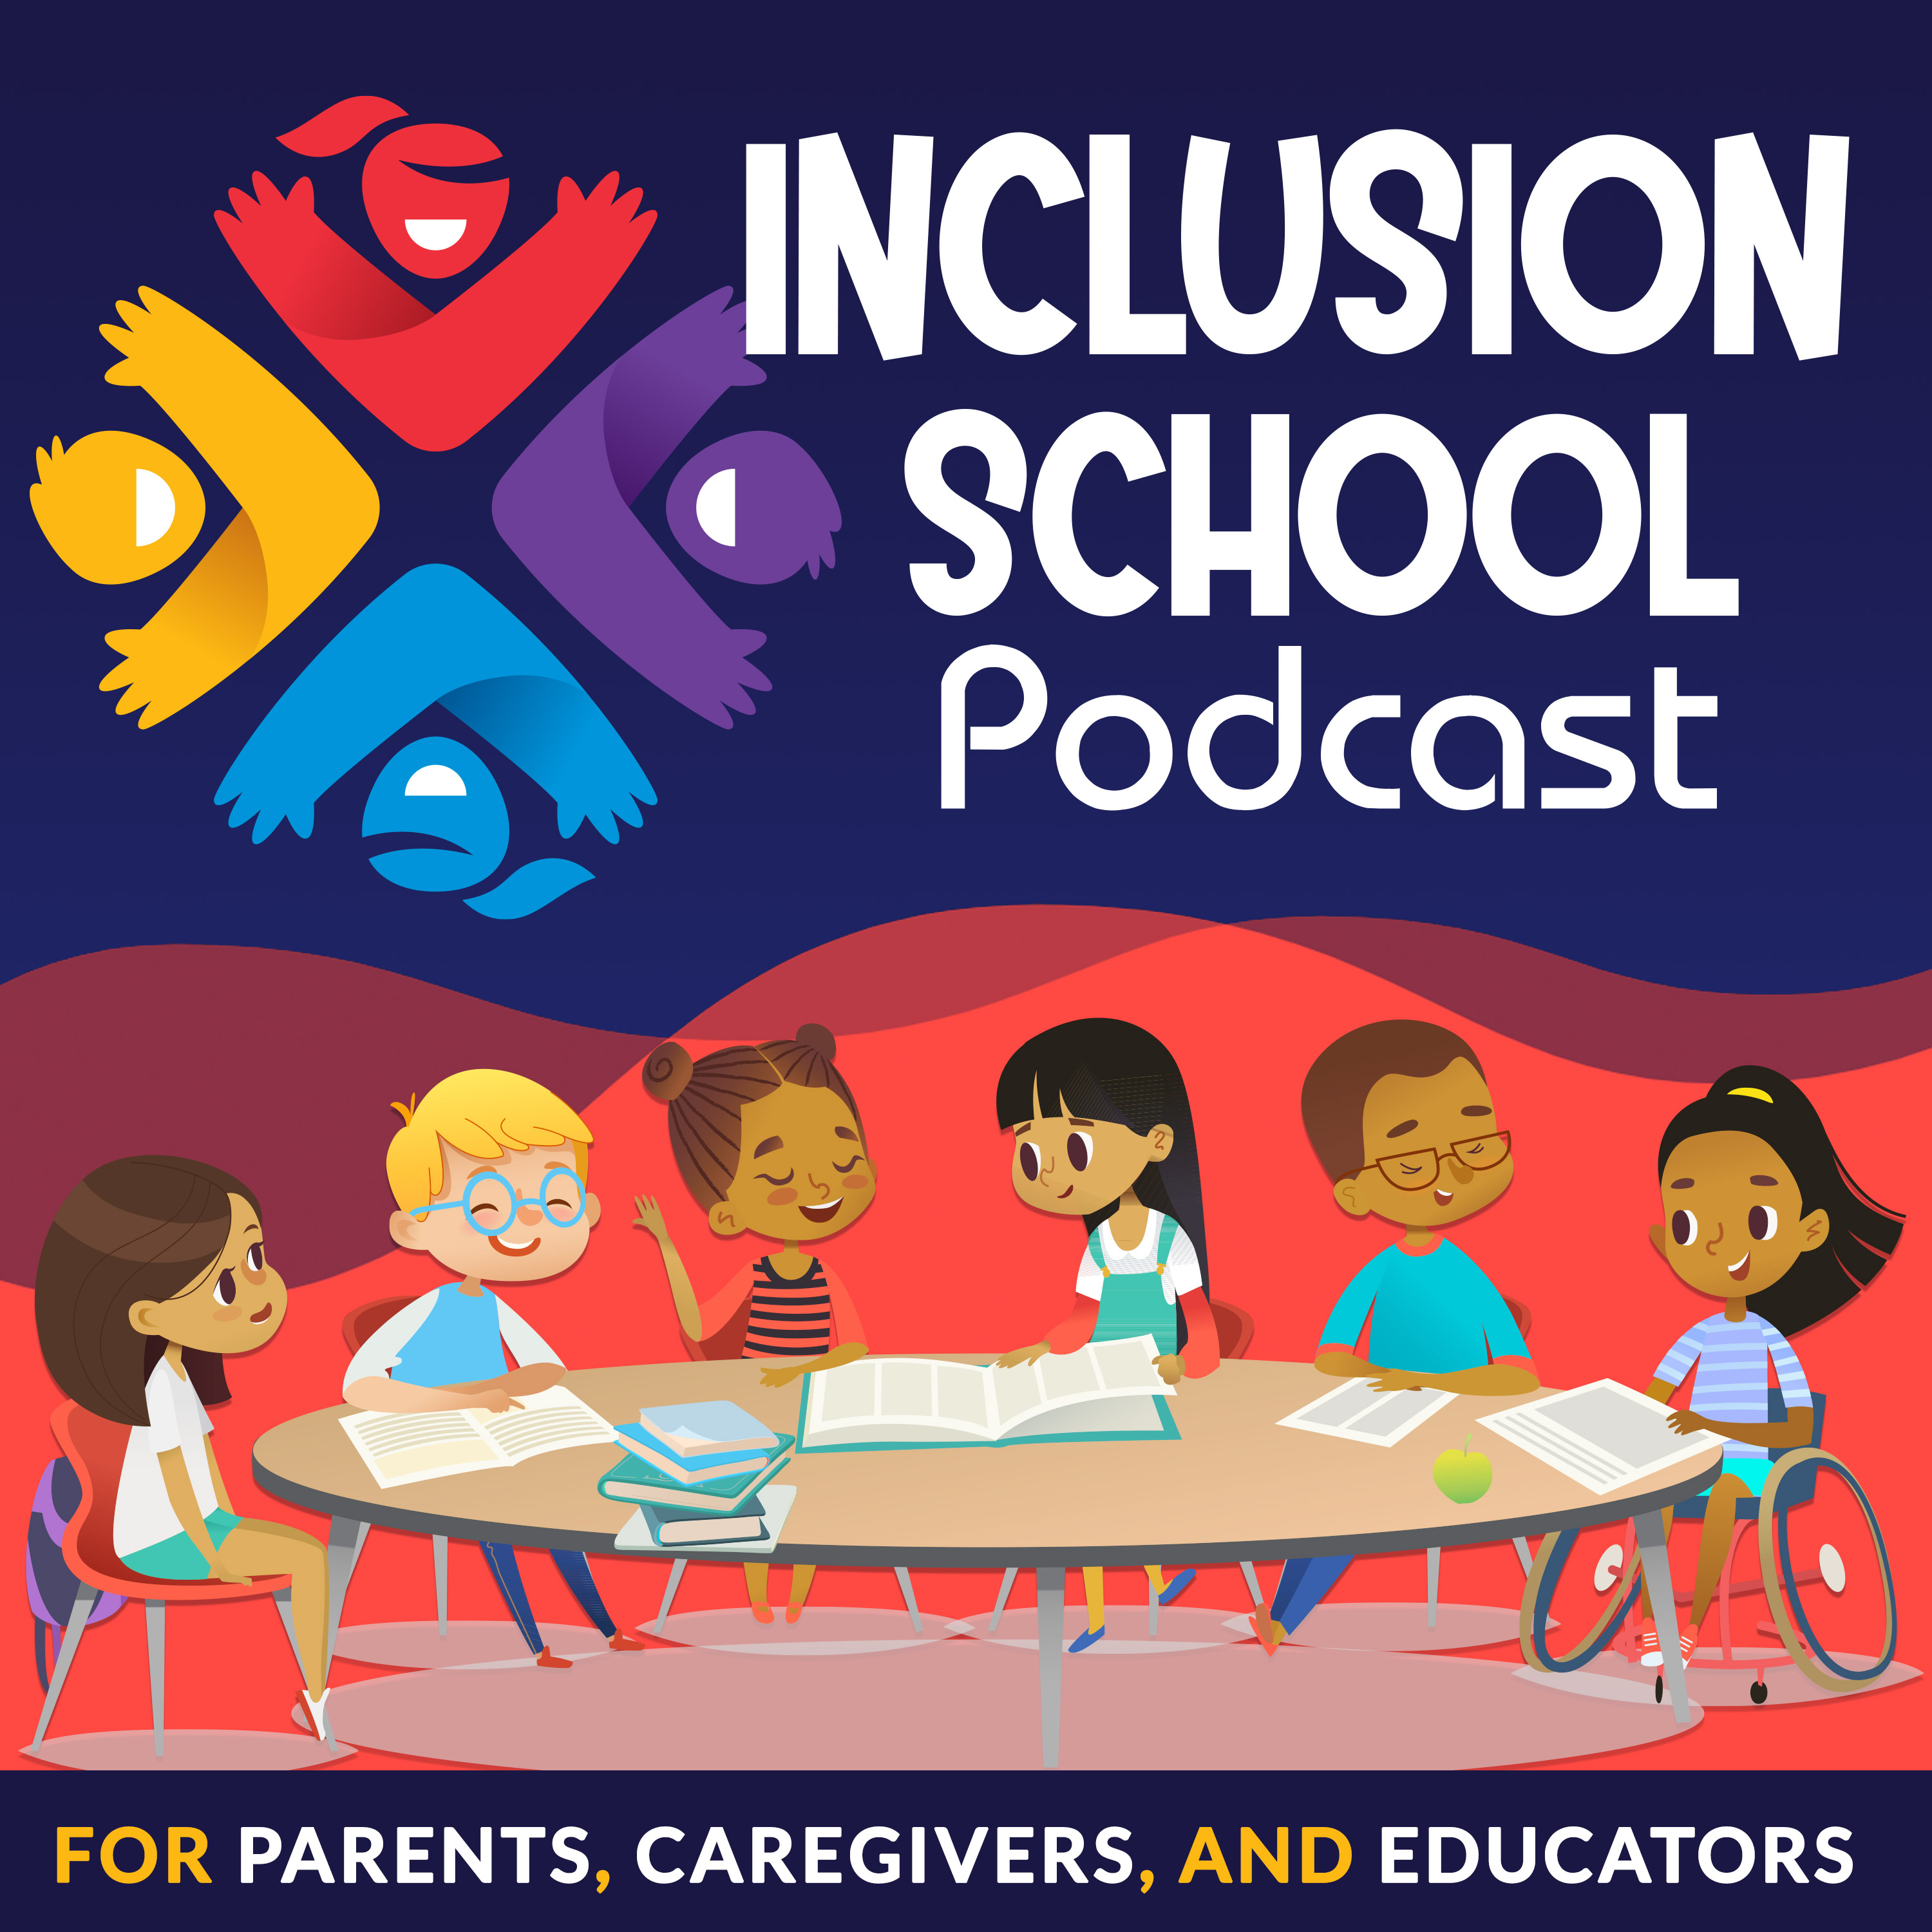 S1 Episode 2 - A conversation with educator, Lila Jay